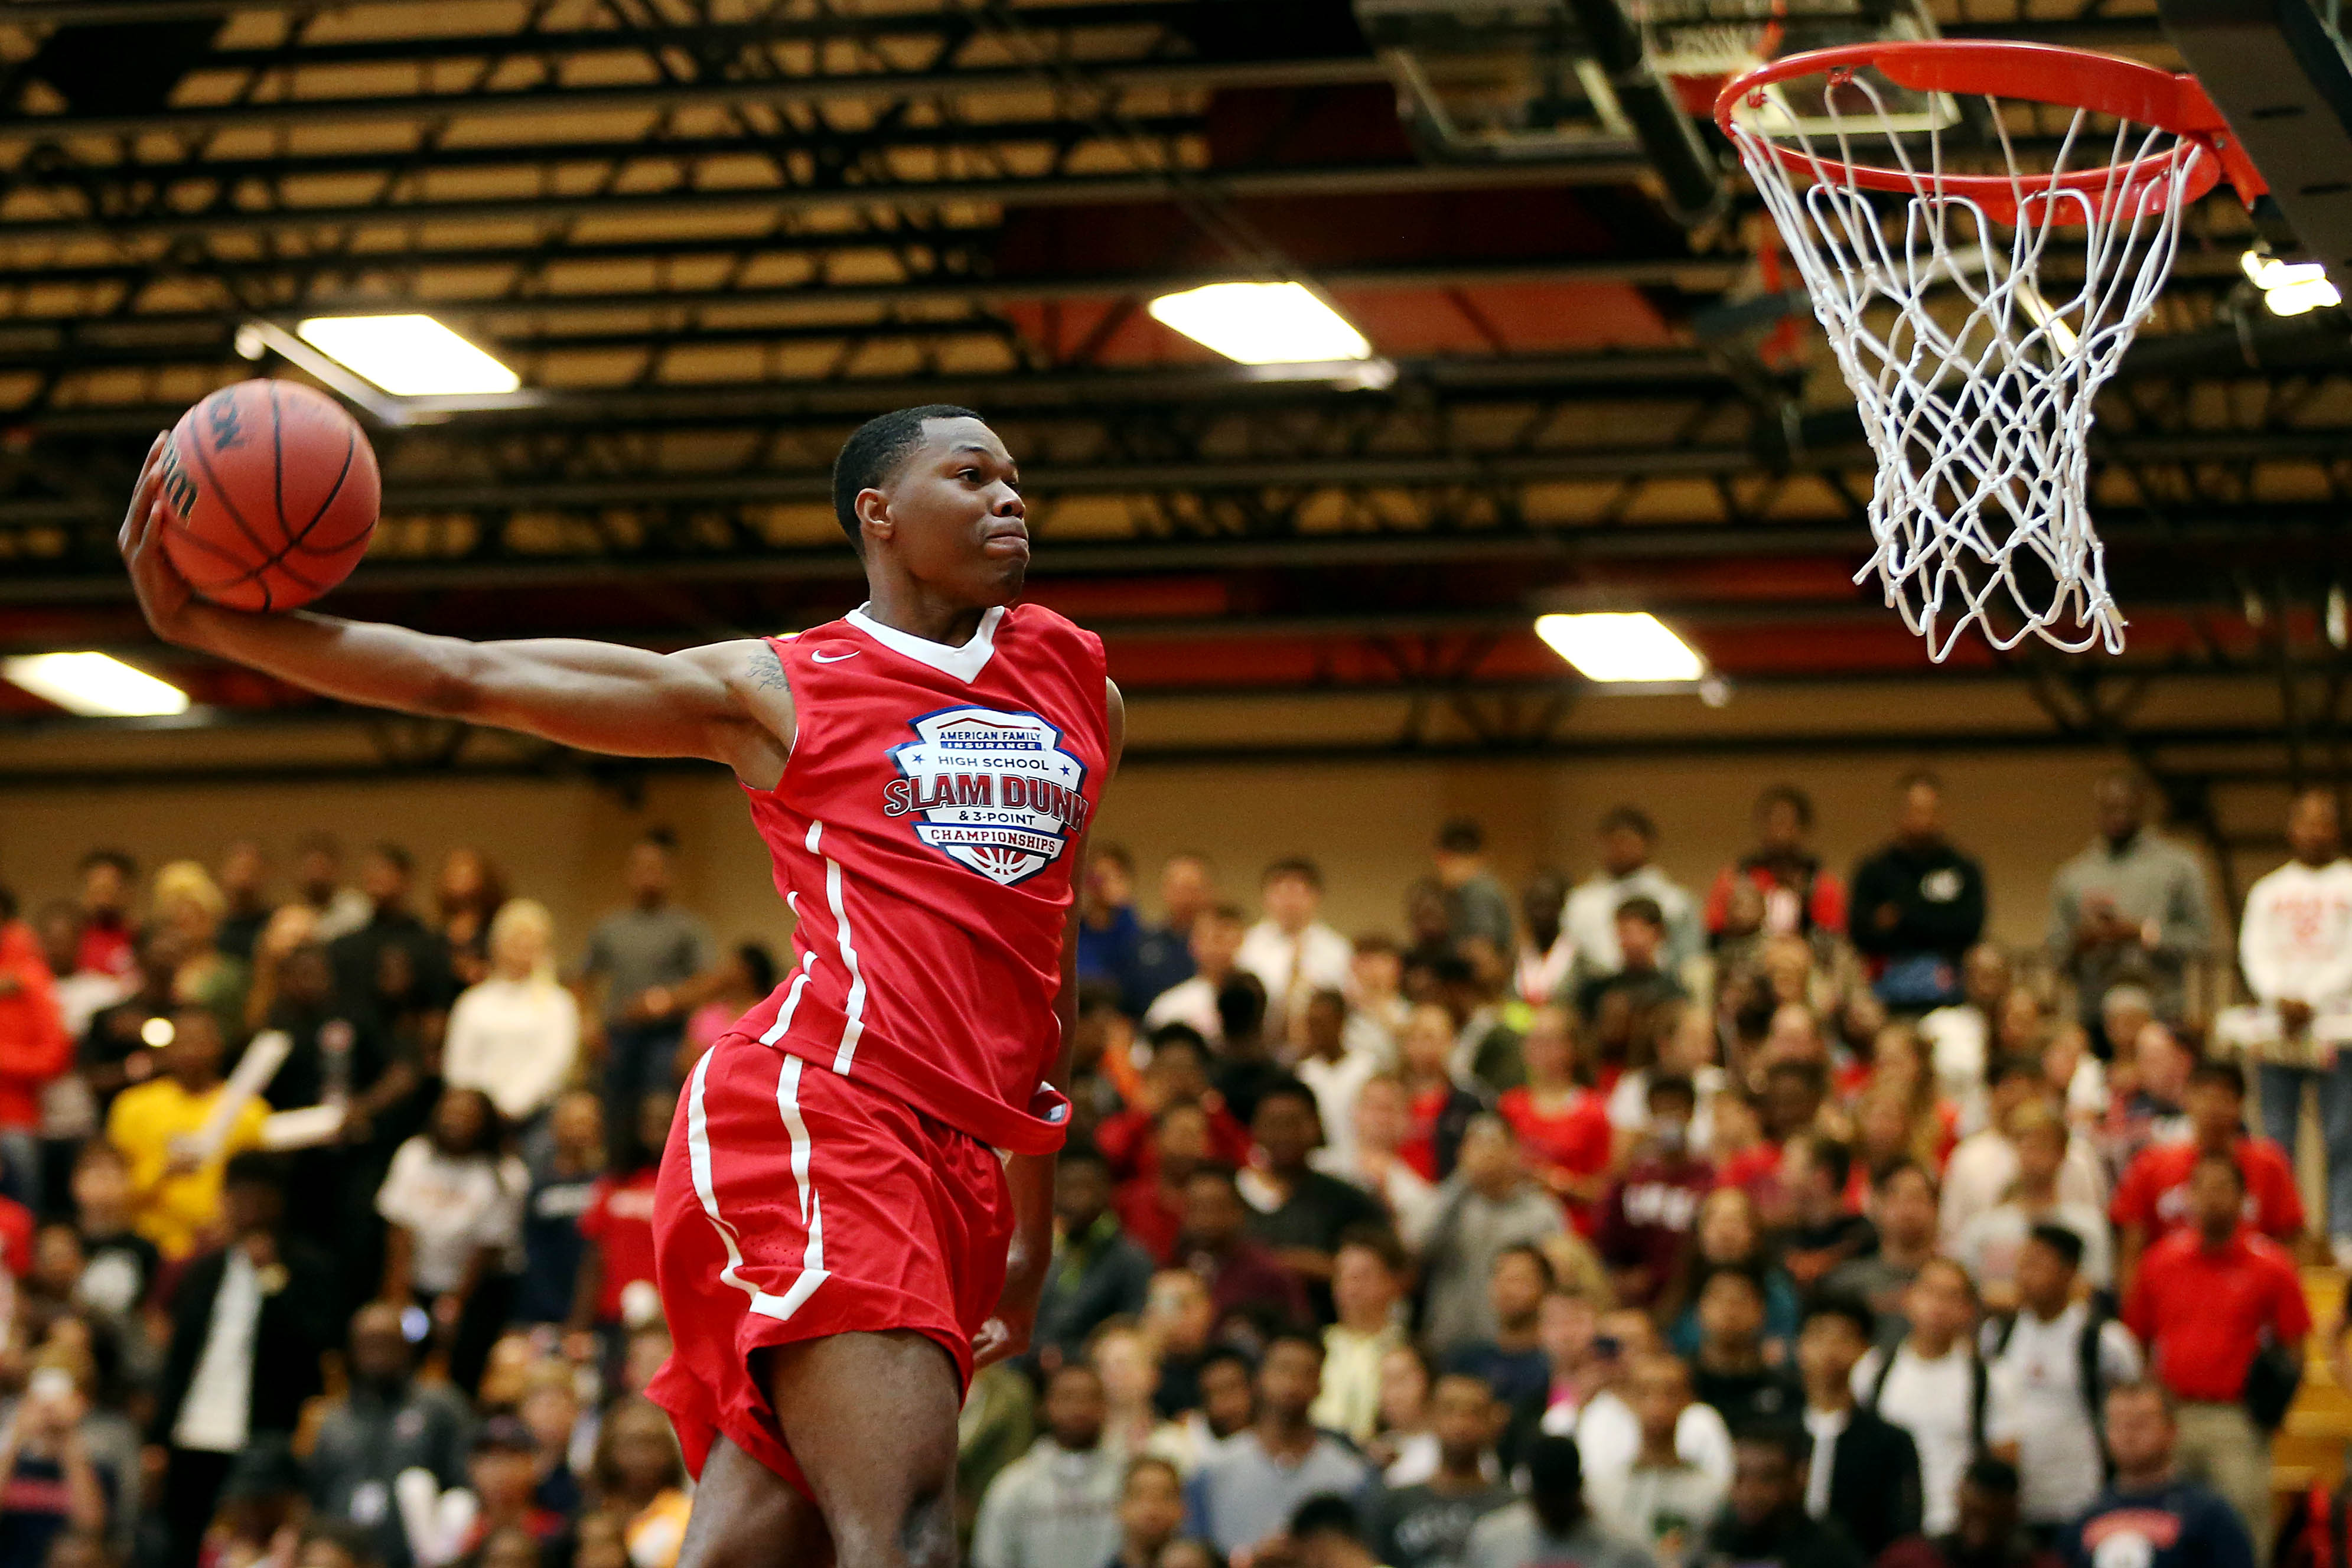 Winner Troy Baxter throwi t down in the dunk contest during the American Family High School Slam and 3-Point Championship (Photo: Peter Casey, USA TODAY Sports)